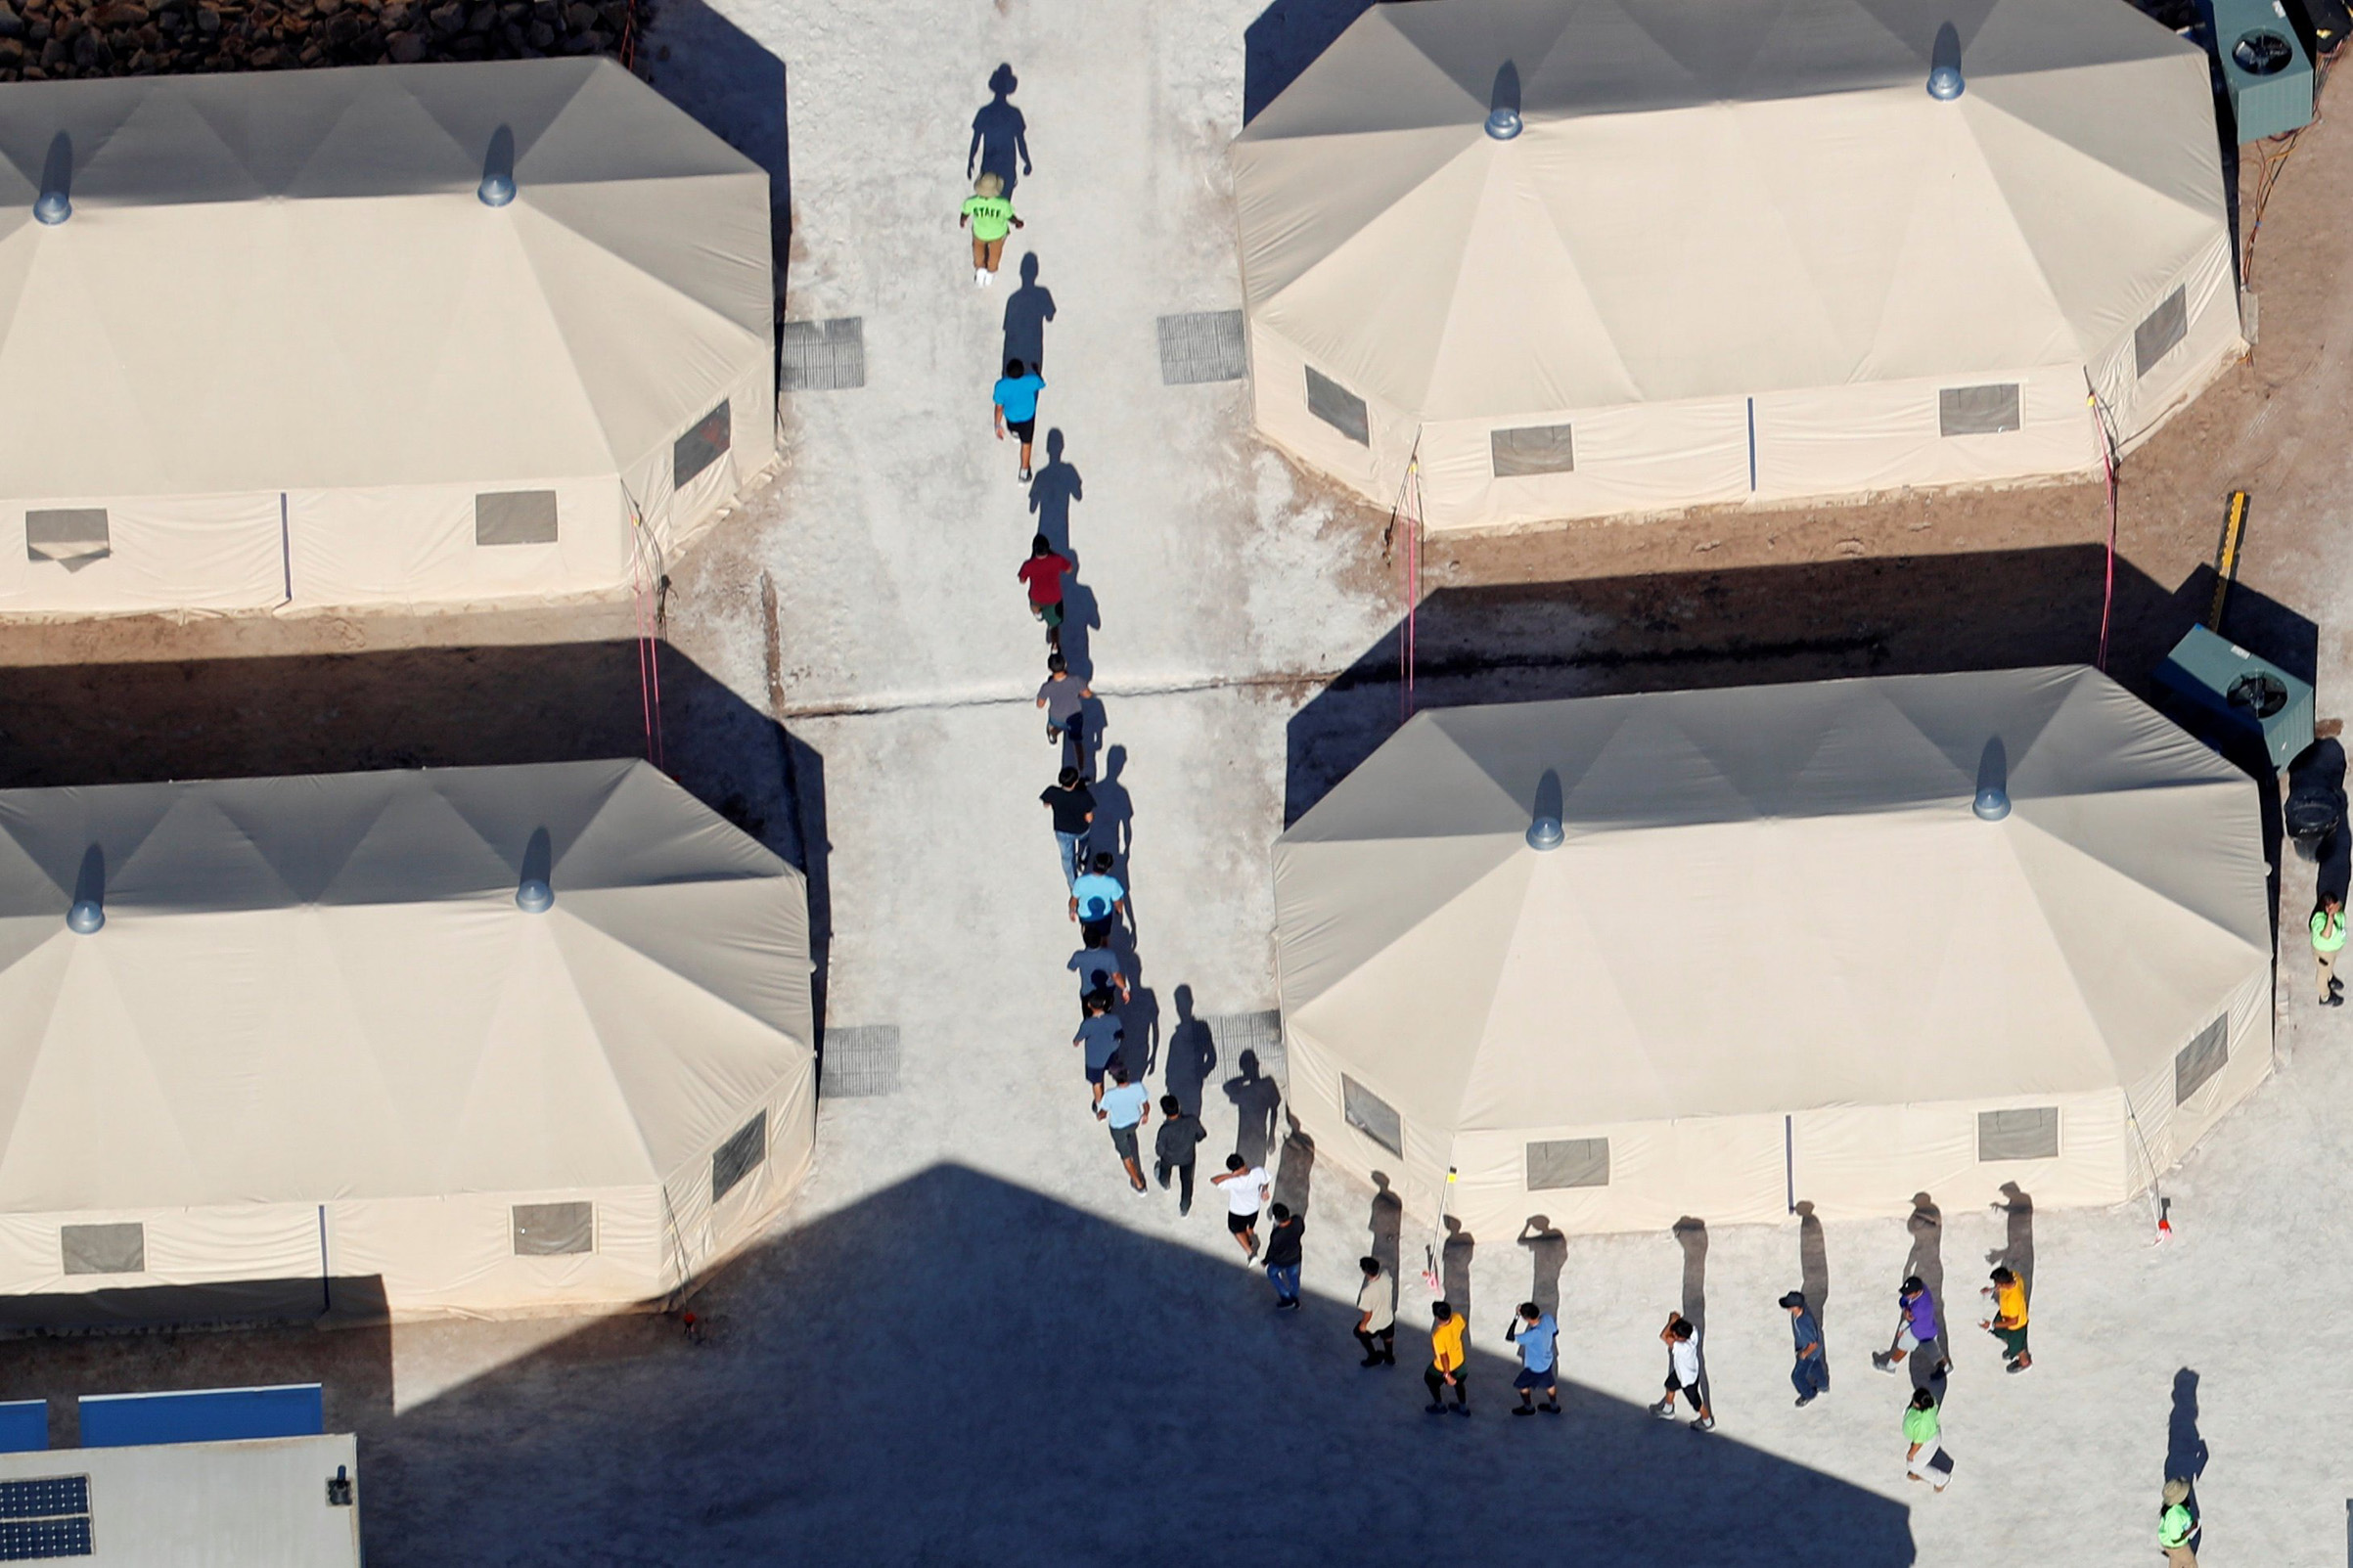 Immigrant children in custody in Tornillo, Texas, on June 18